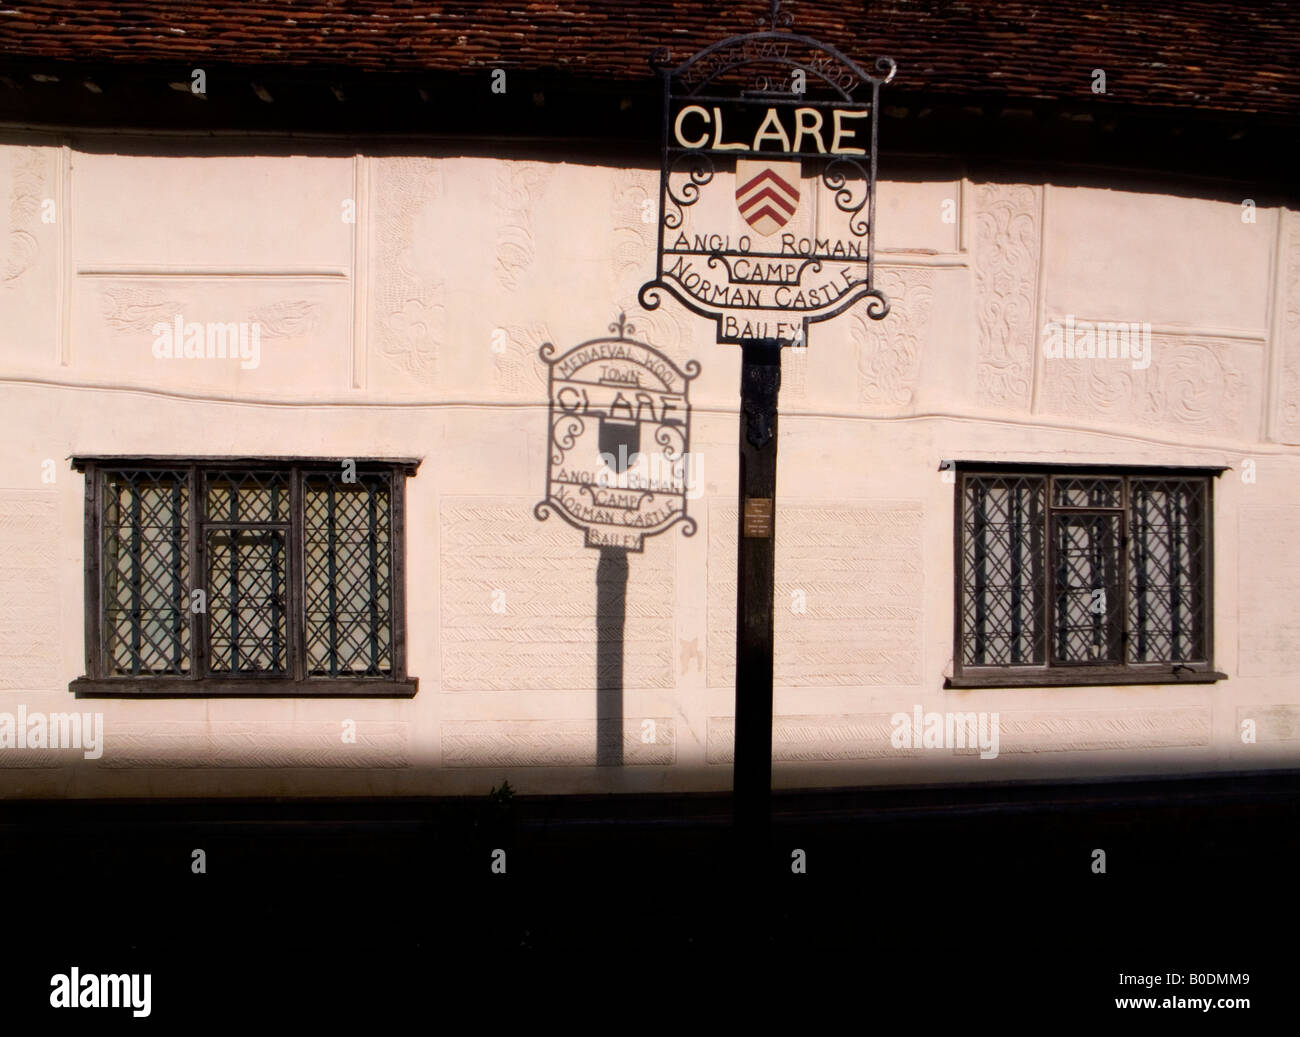 THE TOWN OF CLARE IN SUFFOLK ENGLAND UK SIGN SHADOW ON WALL OF OLD PARGETTED BUILDING IN CLARE R - Stock Image